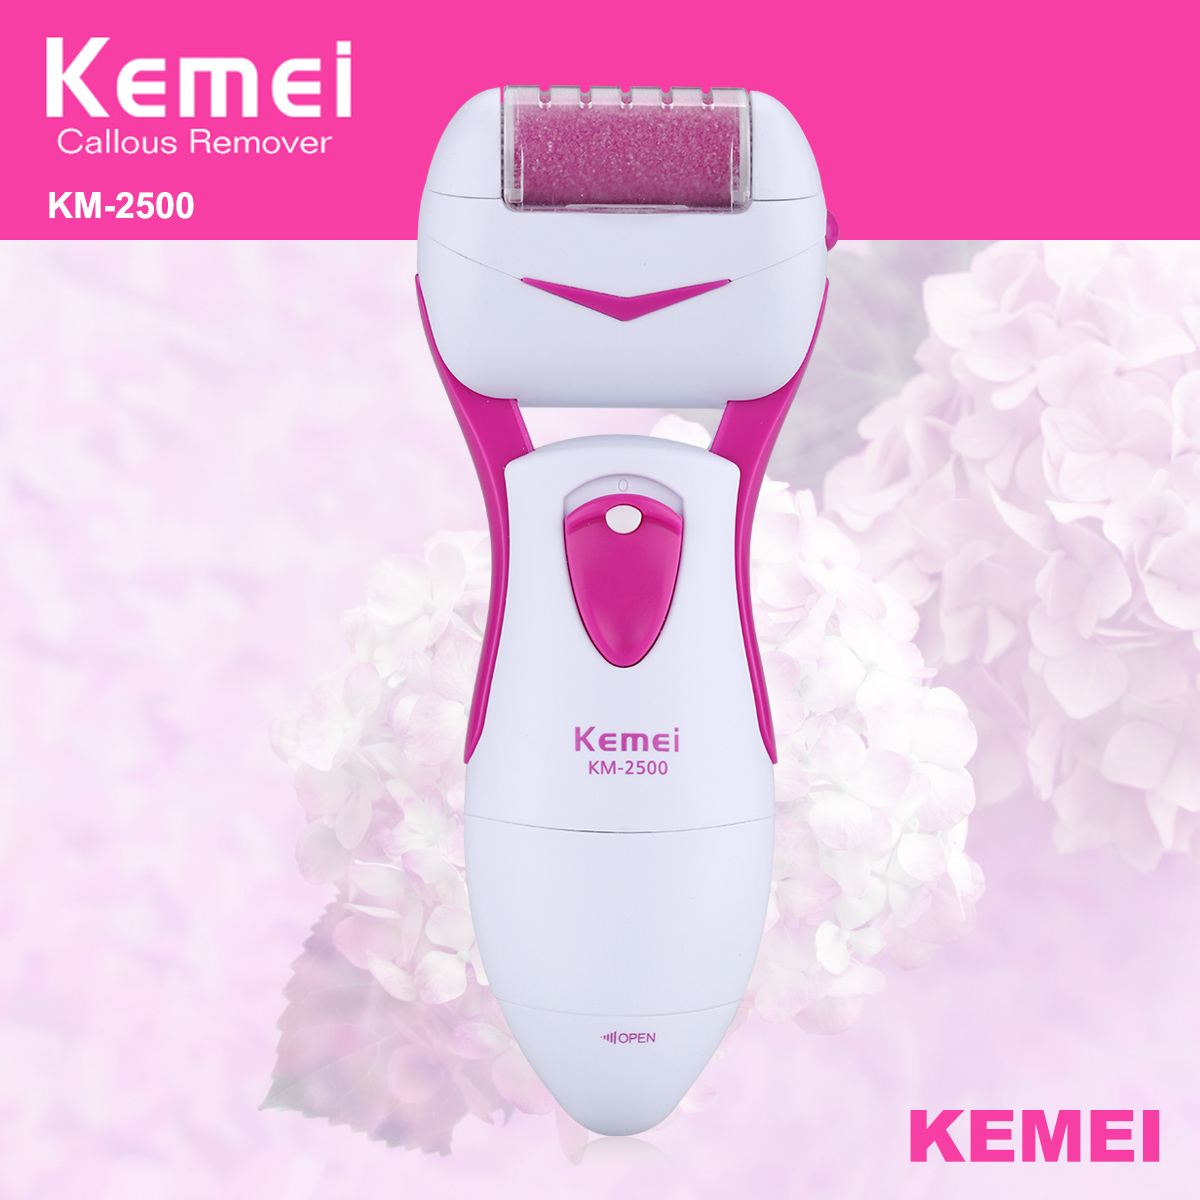 Electric Foot Pedicure Machine Professional Feet Care Tools+ 2 Replacement Heads Dead Skin Callous Remover